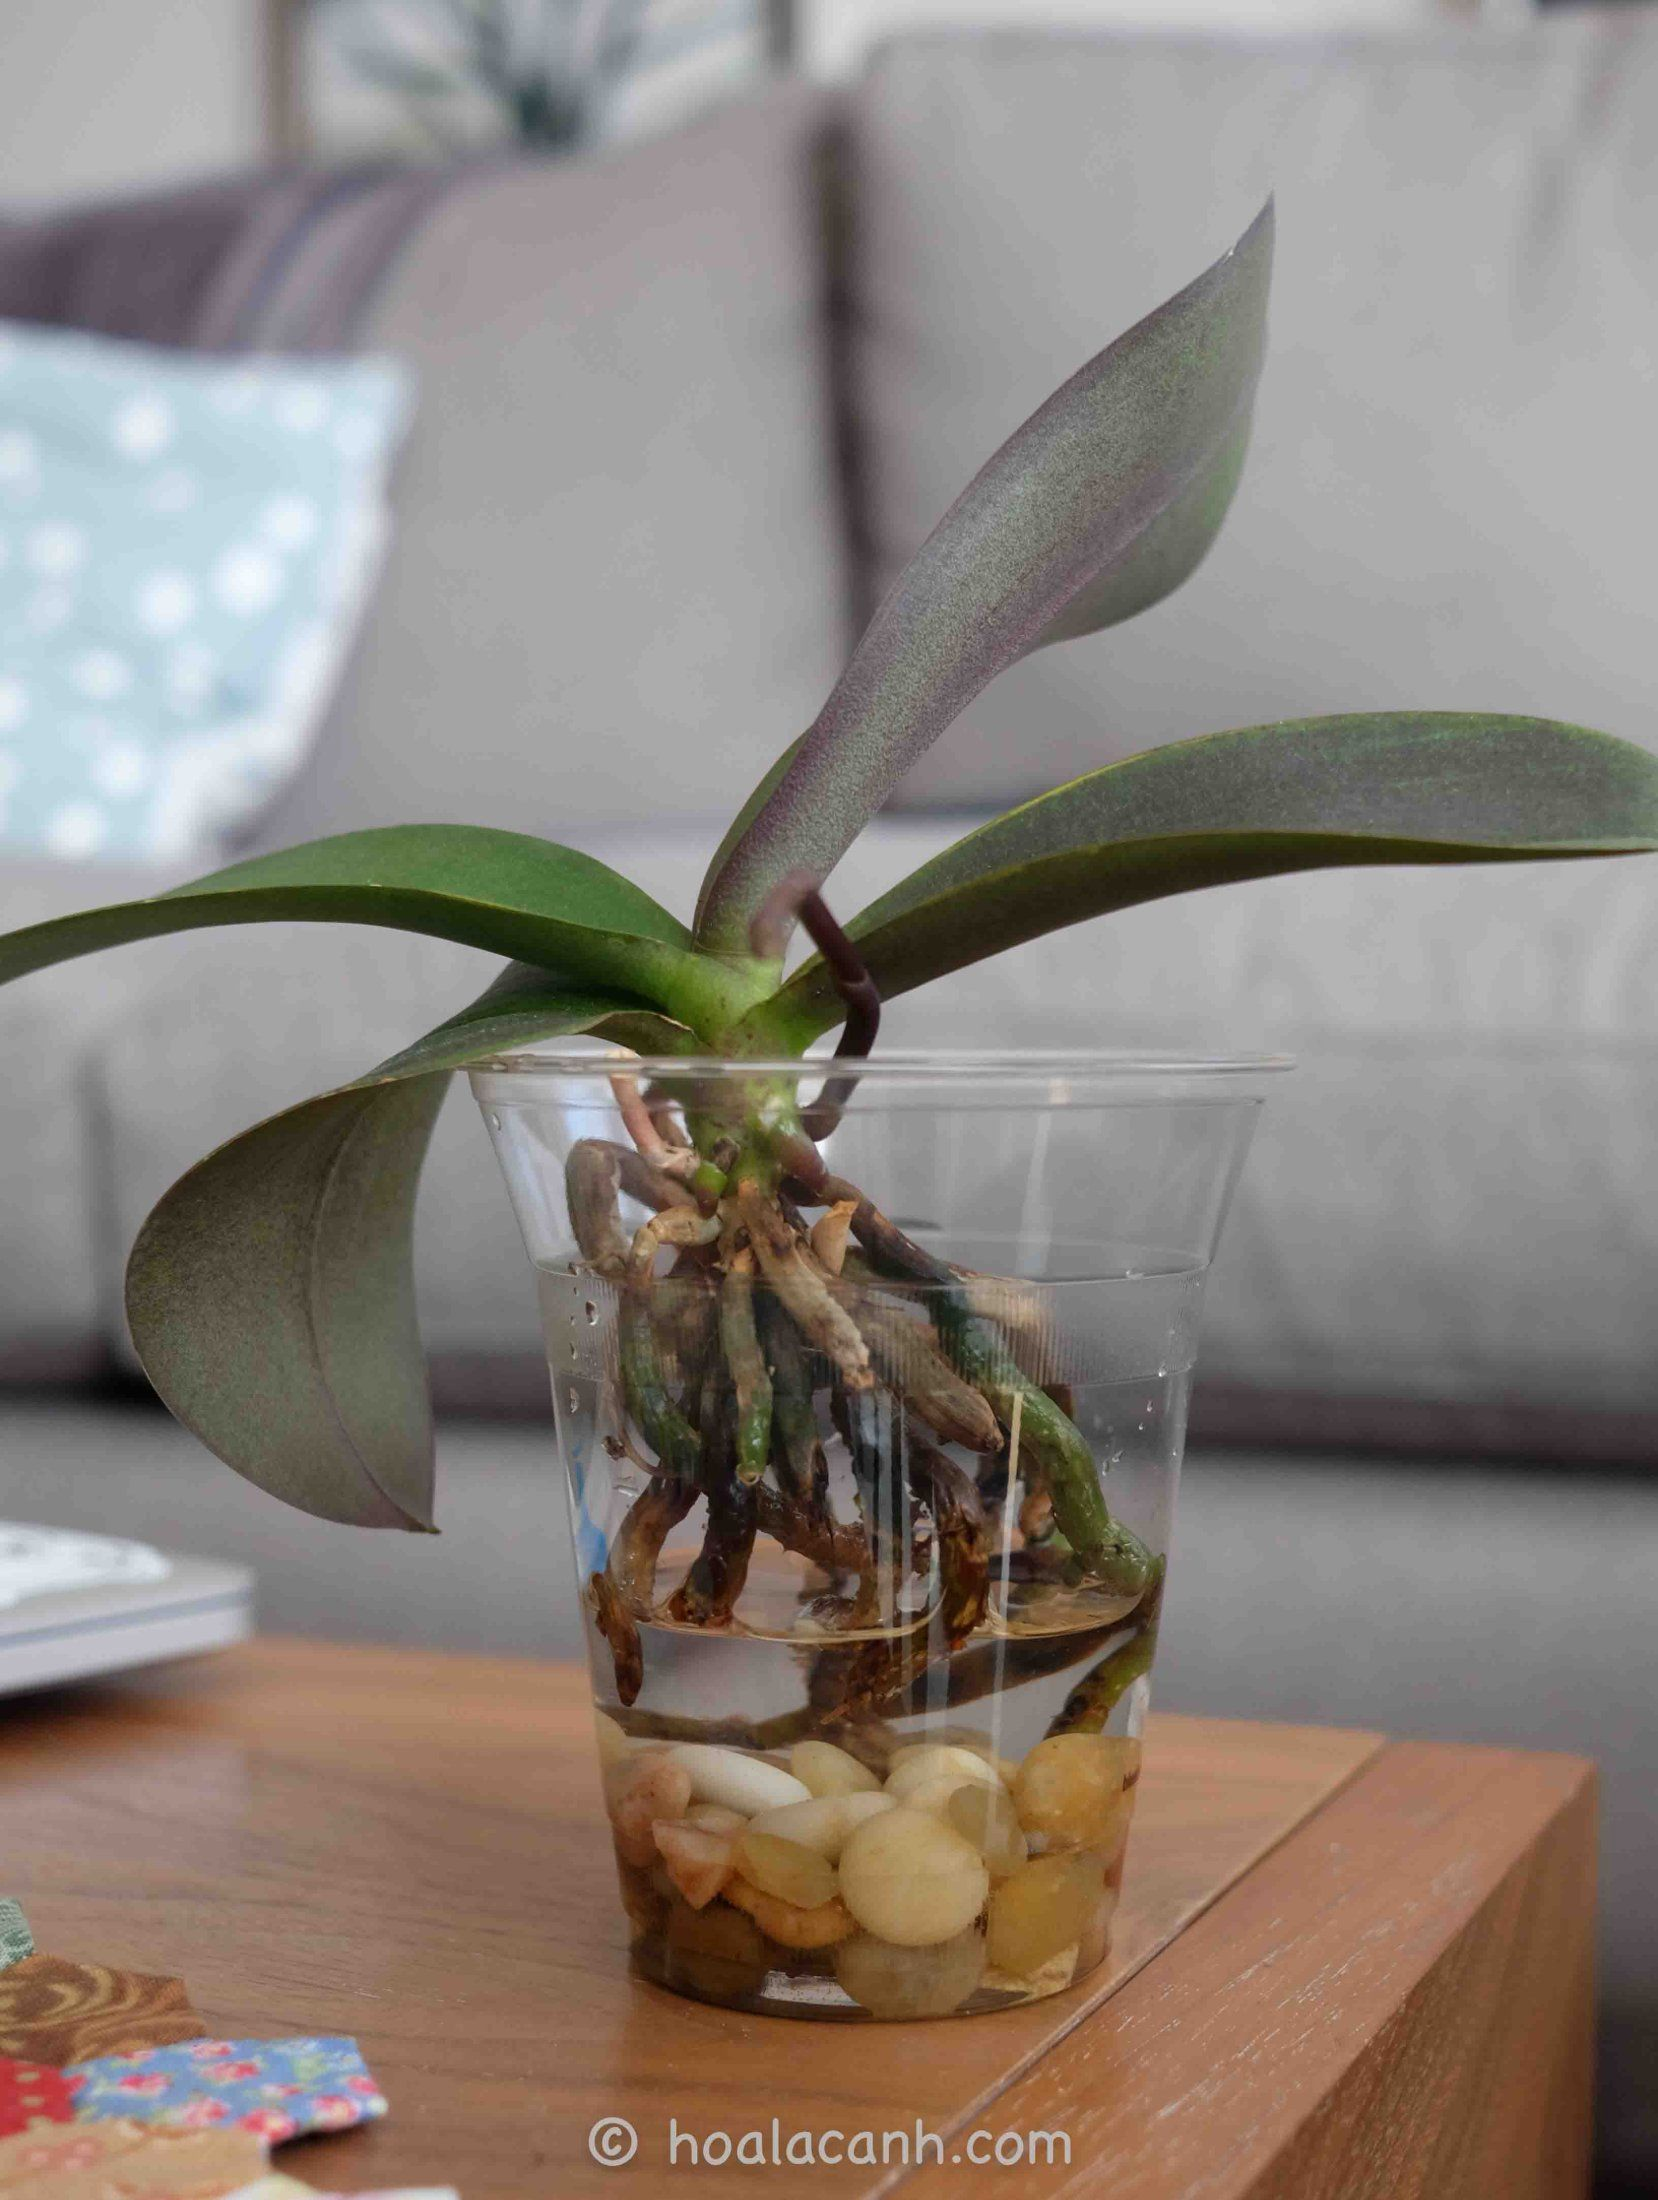 I started growing orchids particularly phalaenopsis orchids in